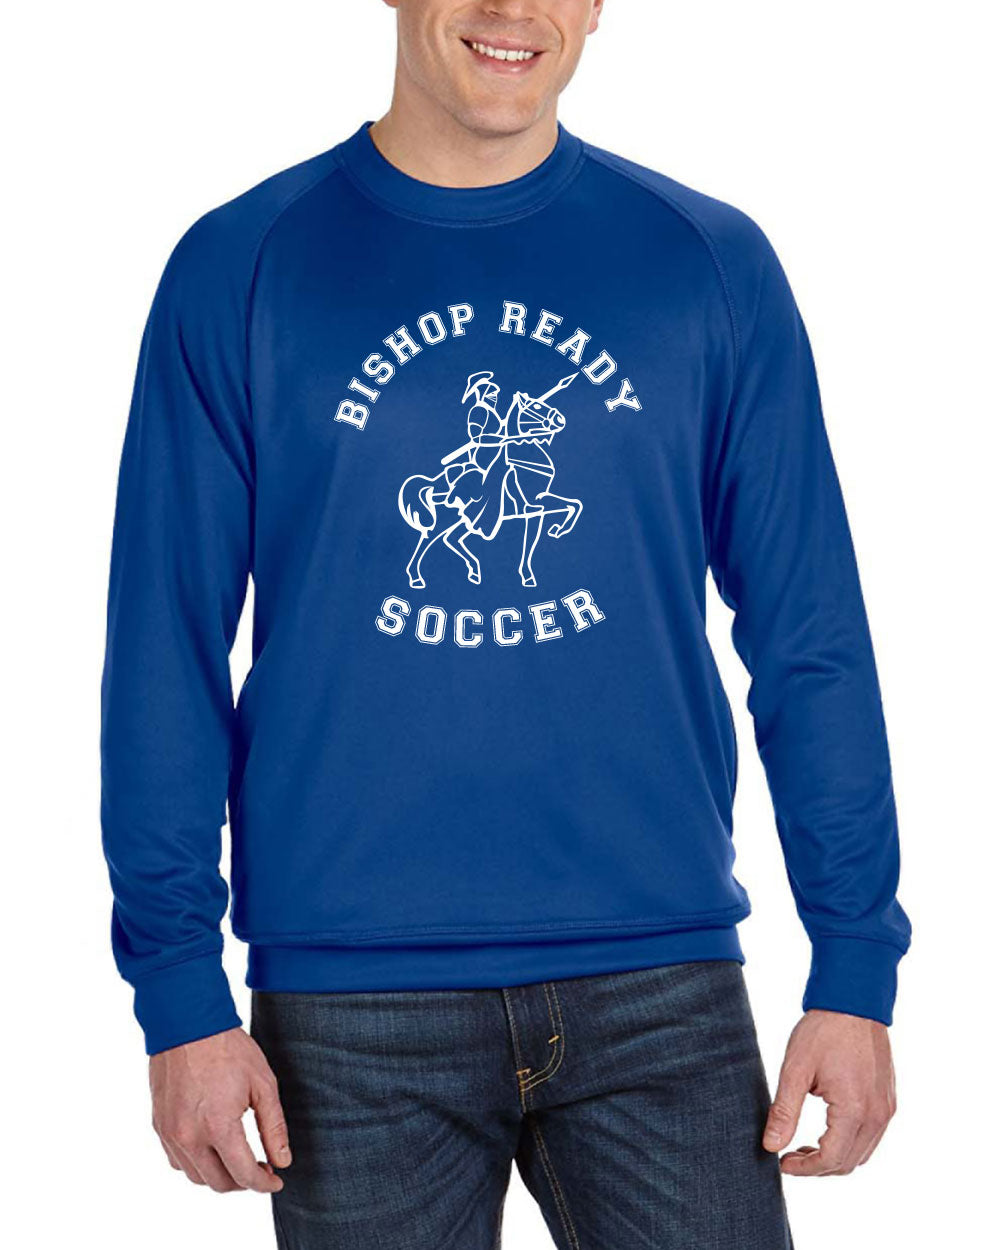 Boy's Long Sleeve Crewneck Fleece